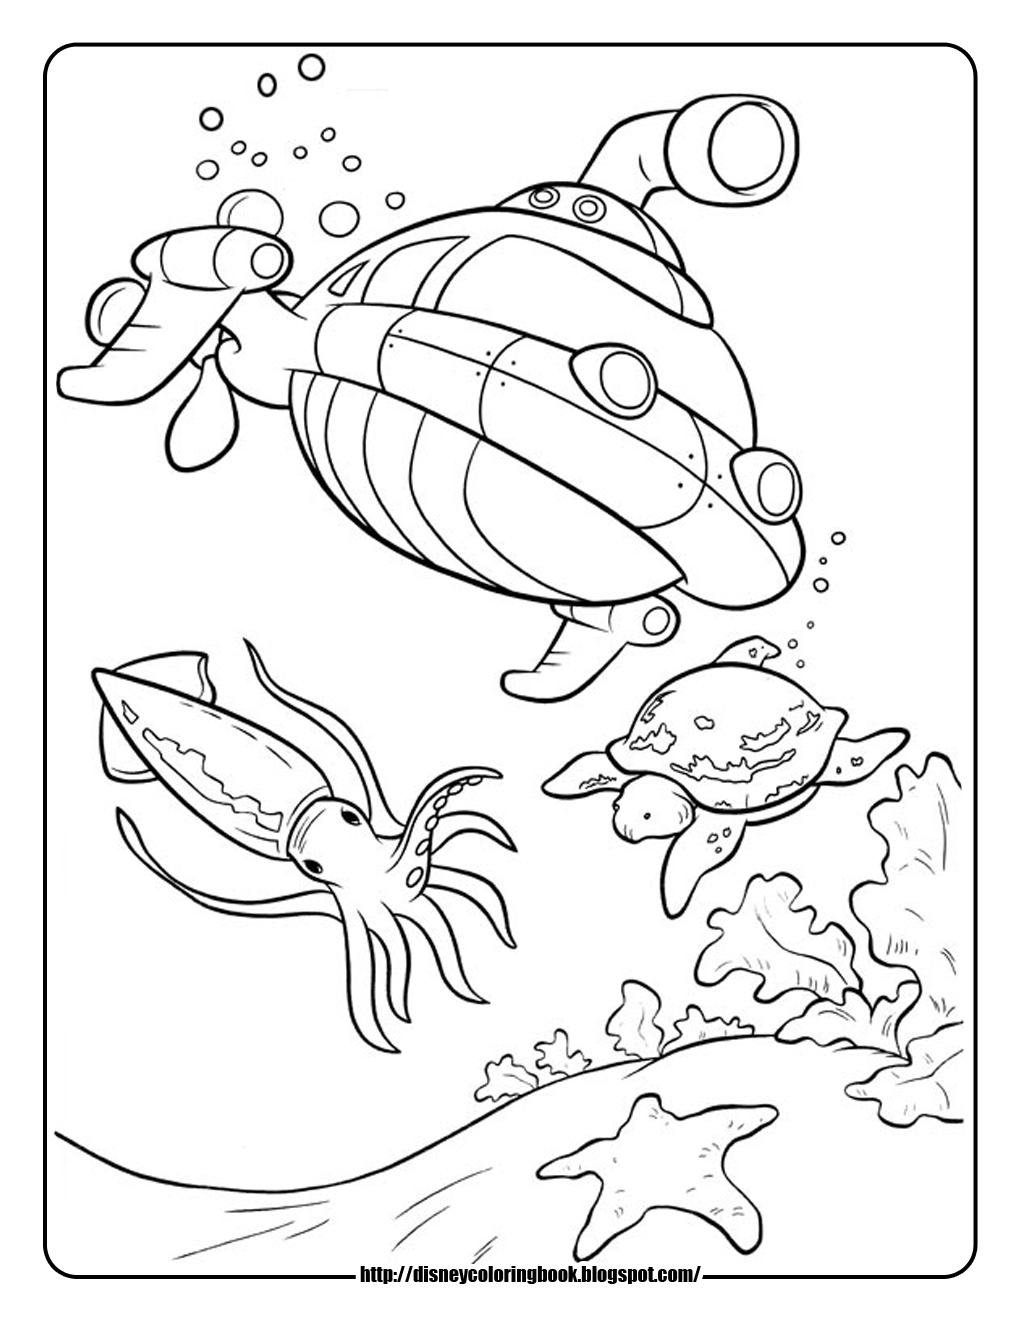 Little Einsteins Rocket Ship Coloring Page | Coloring Pages